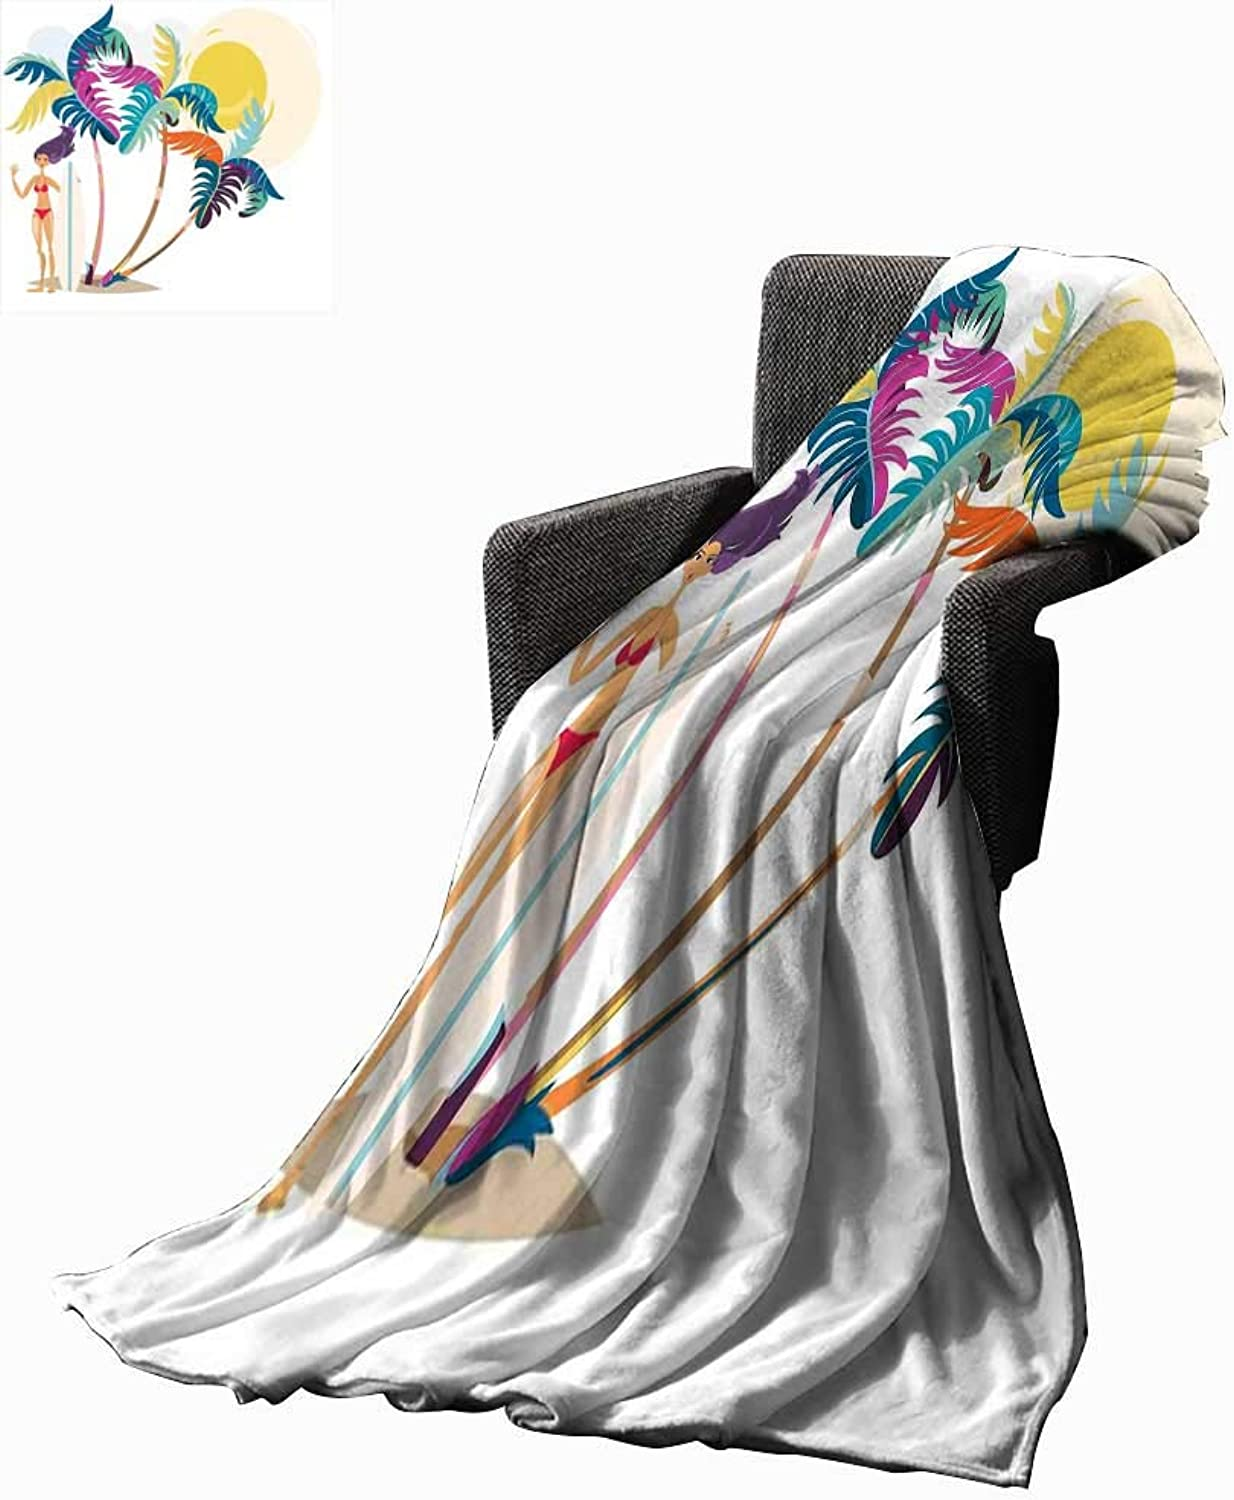 RenteriaDecor Surf Digital Printing Blanket Cute Cartoon Surf Girl On Beach Abstract Illustration Summertime Vacation On Seaside 60 x50 ,Super Soft and Comfortable,Suitable for Sofas,Chairs,beds